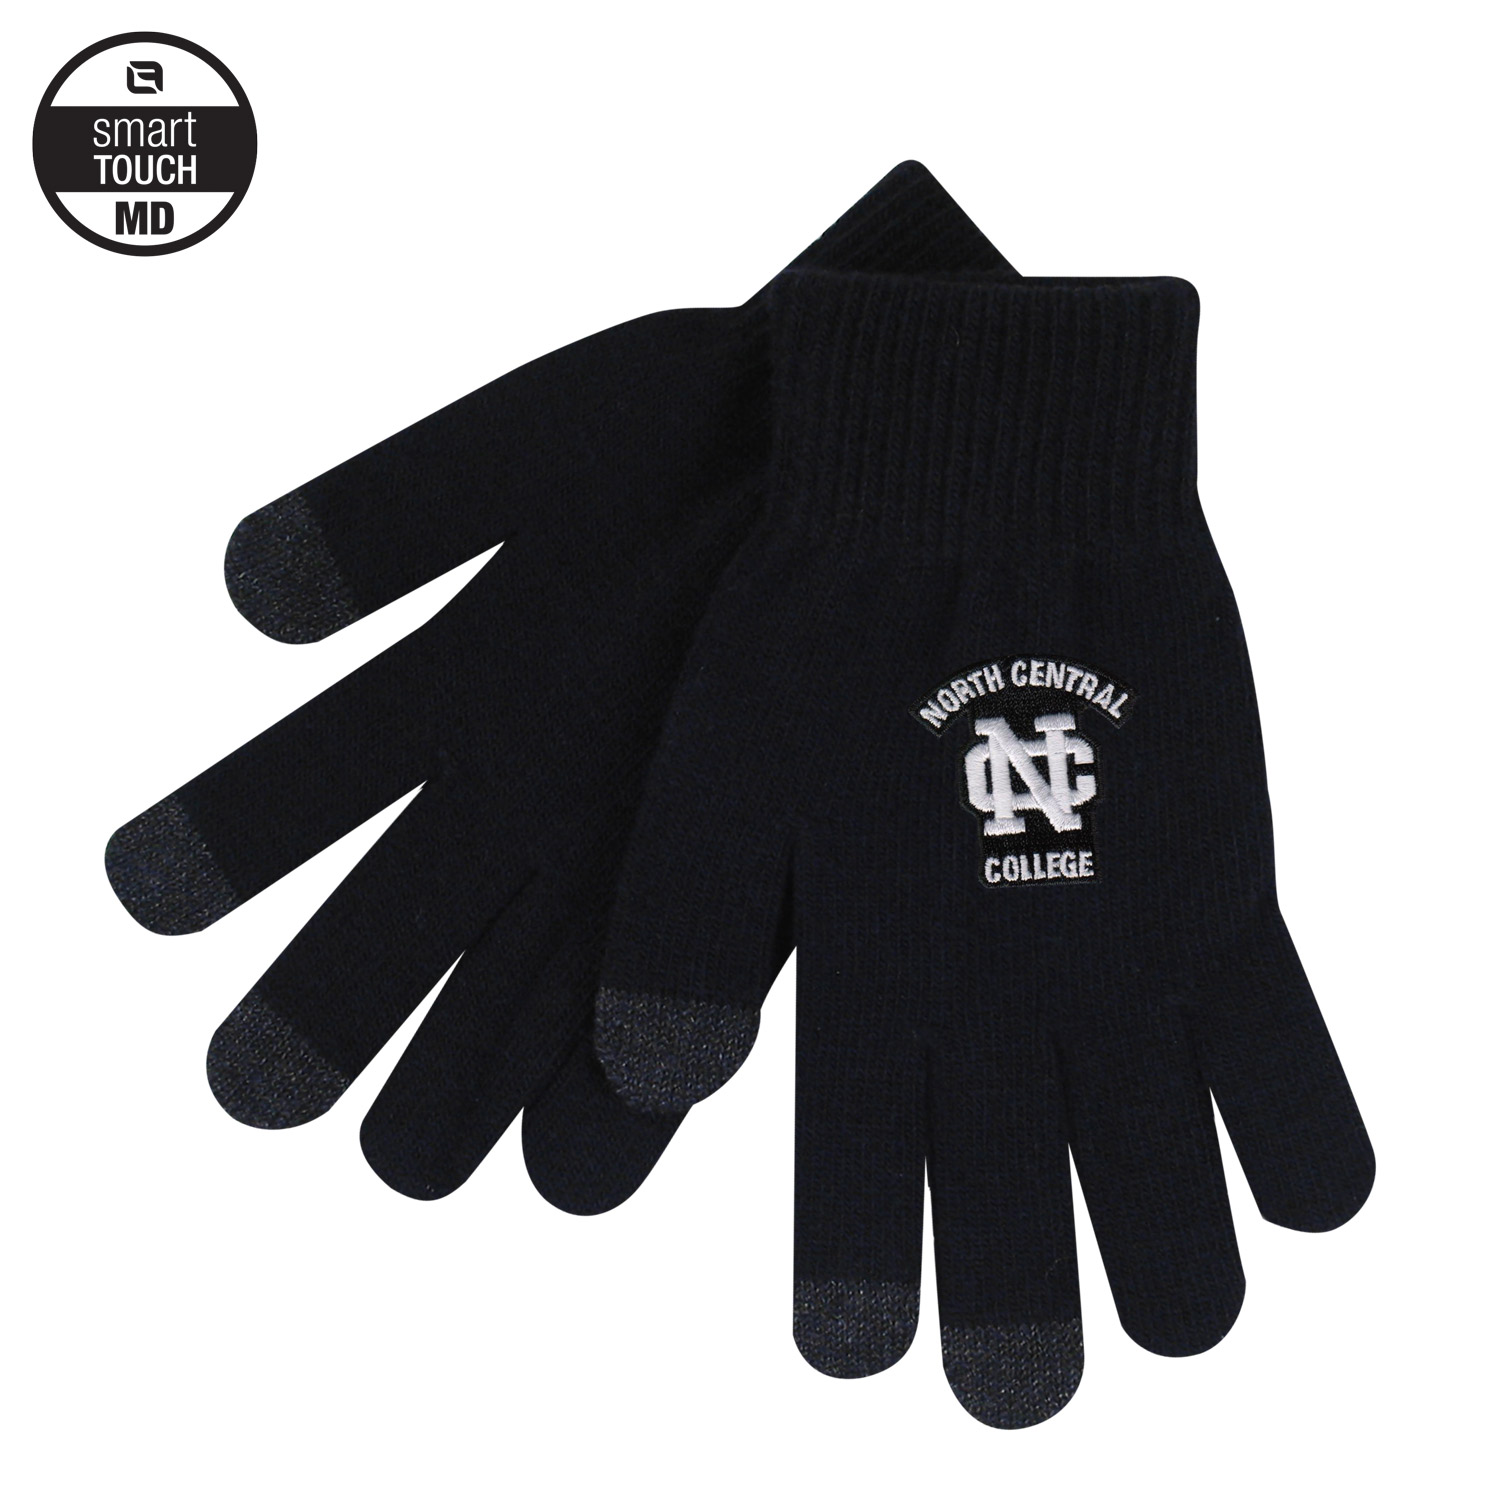 Image for the LogoFit Smart Touch Black Knit Gloves w/Logo product